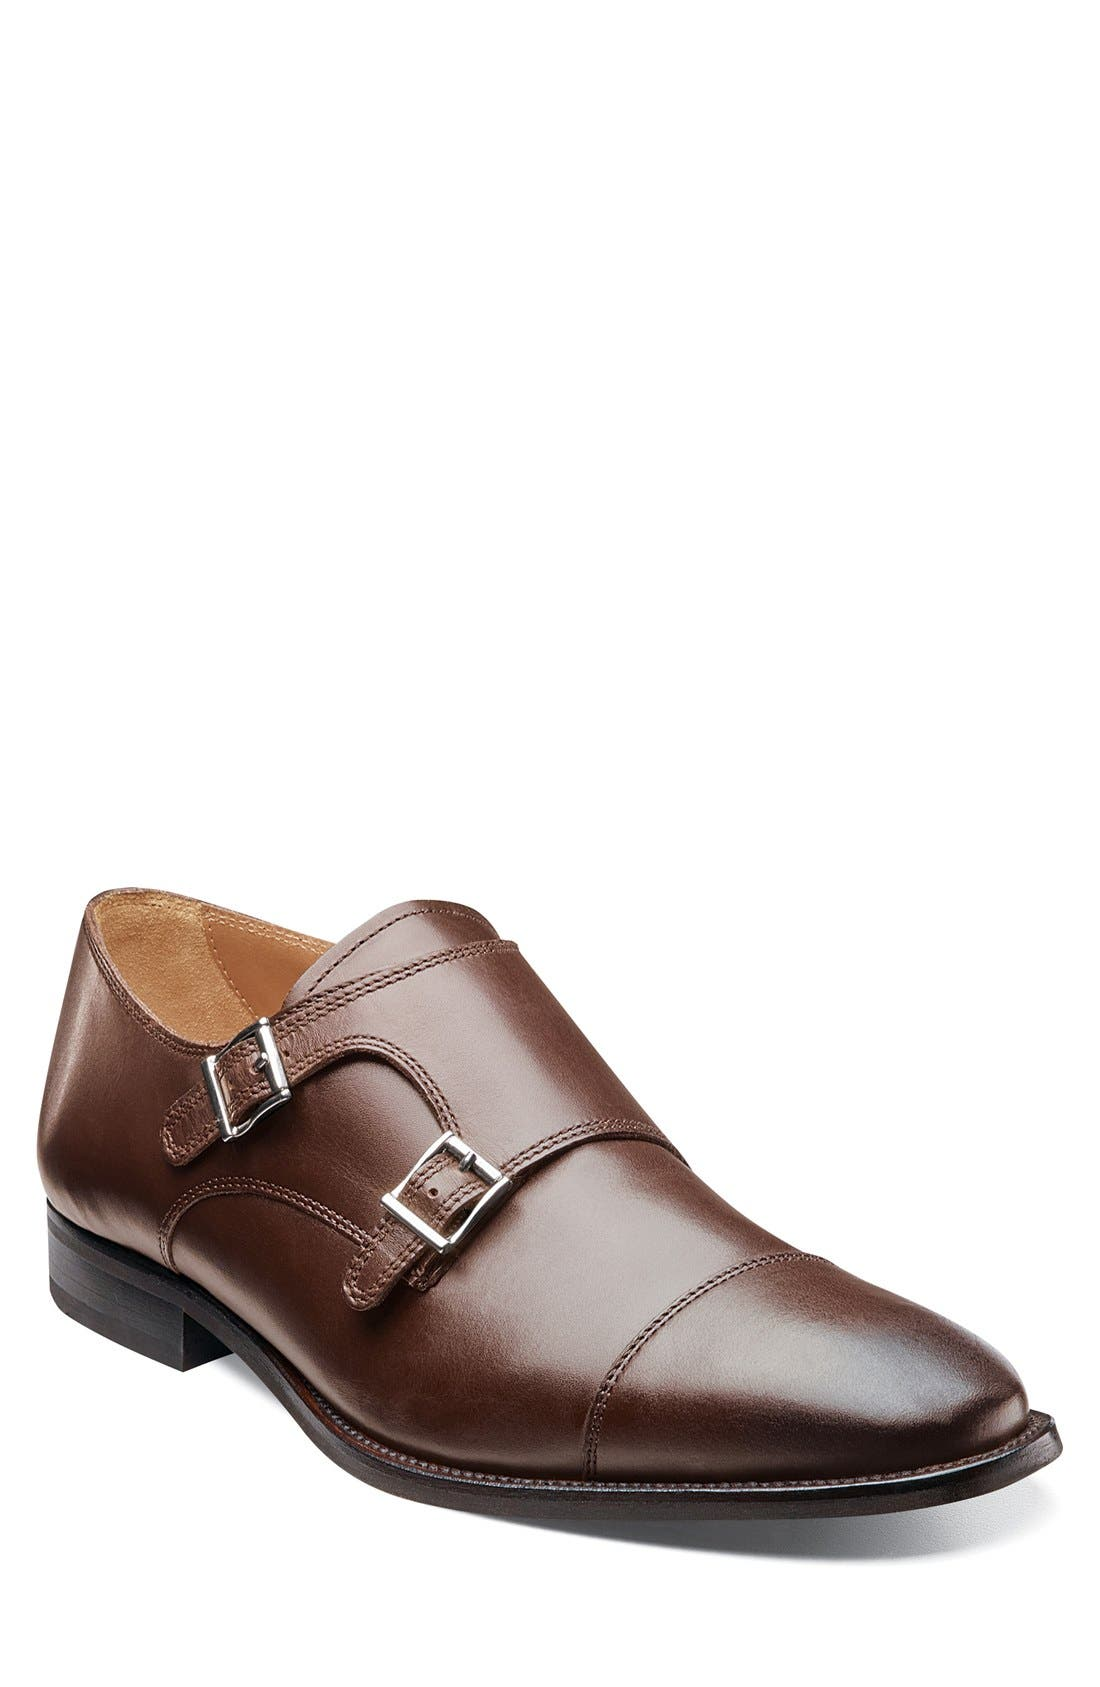 FLORSHEIM, 'Sabato' Double Monk Strap Shoe, Main thumbnail 1, color, BROWN